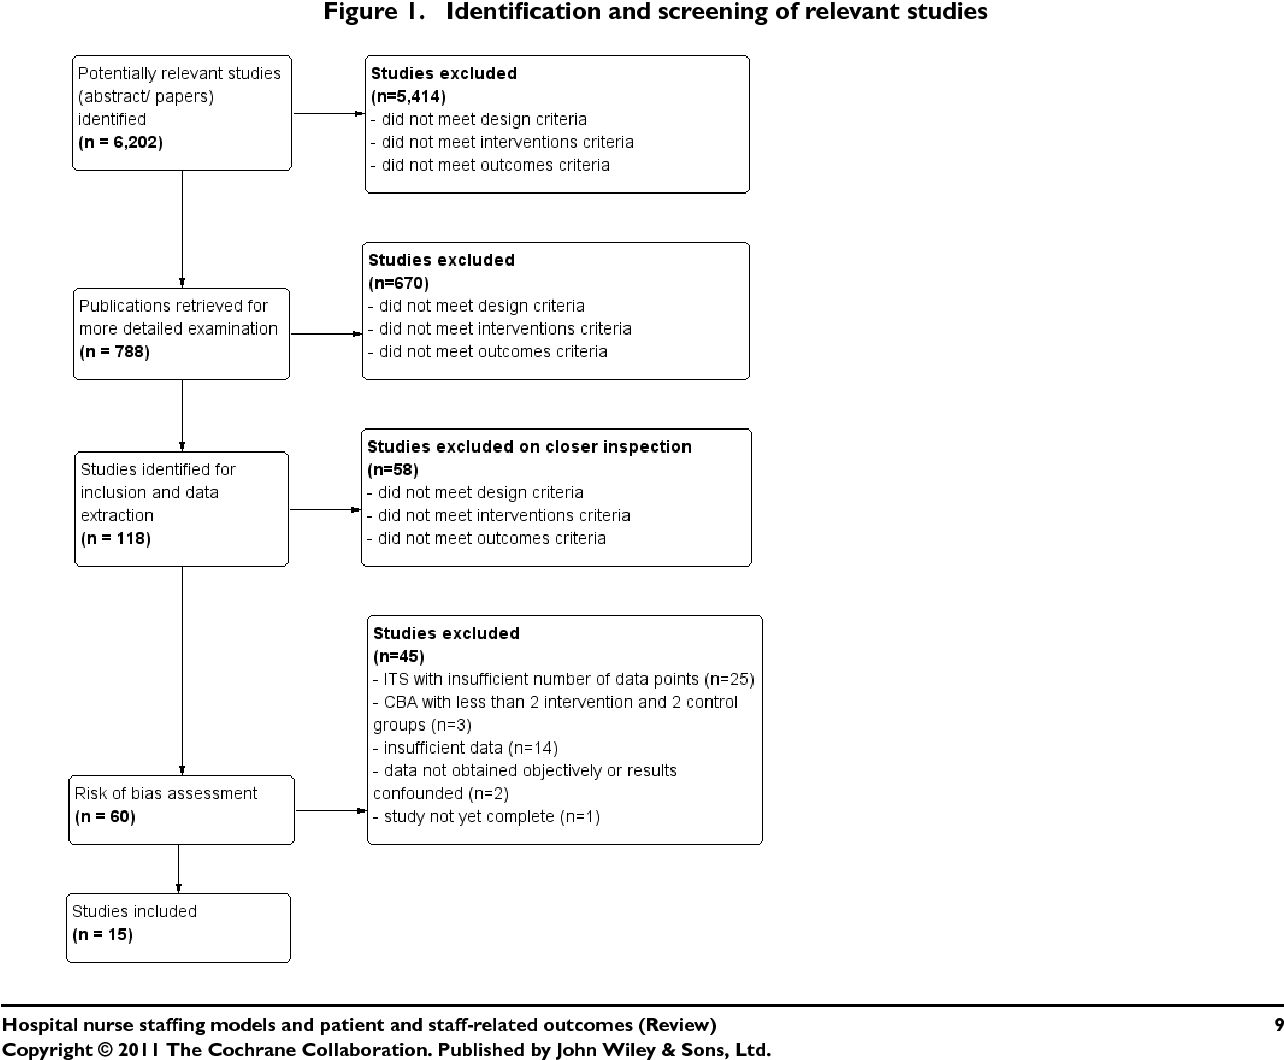 Hospital nurse staffing models and patient and staff-related